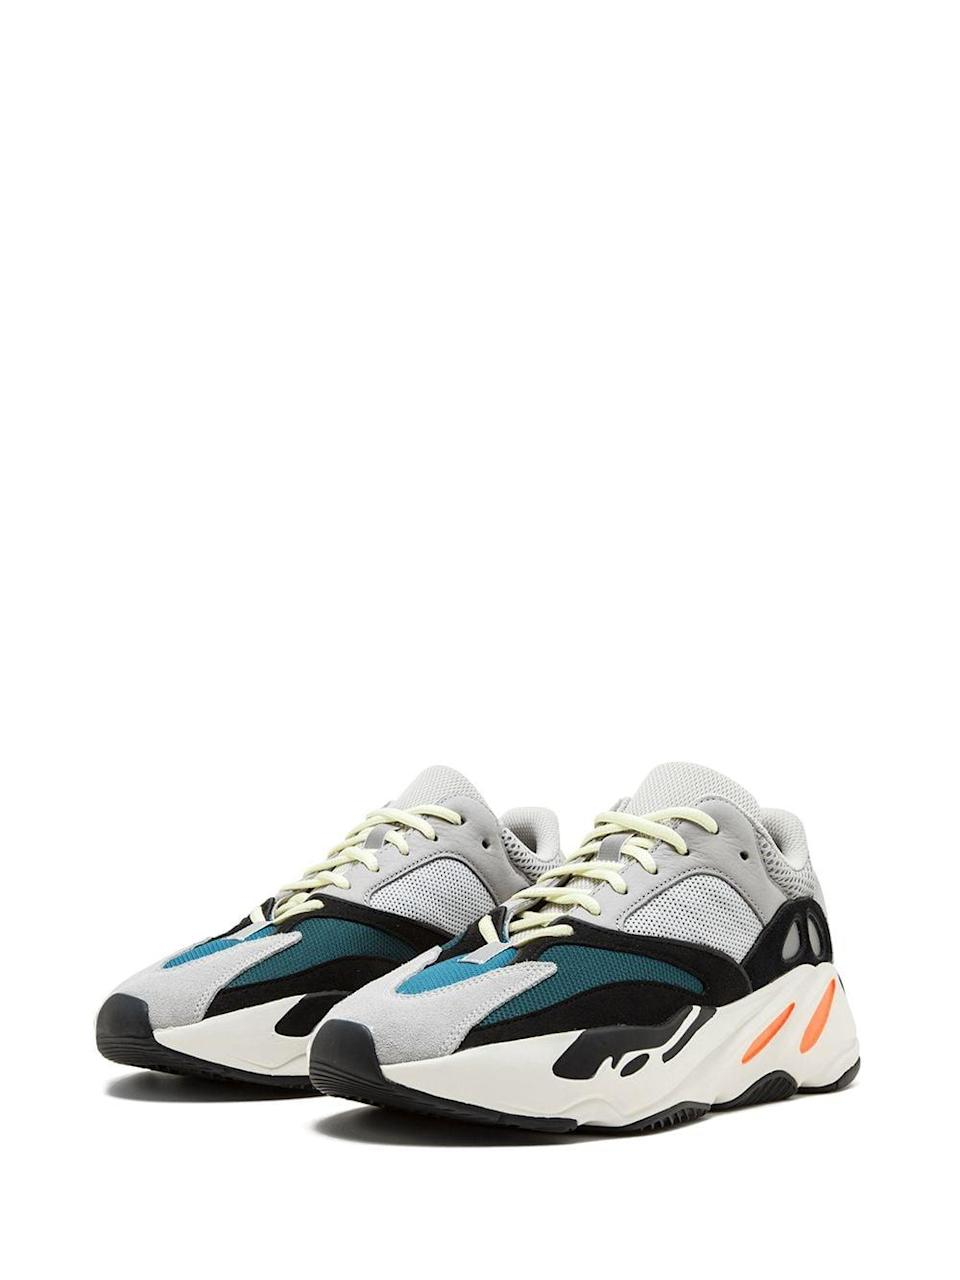 <p>We're sure you're not surprised that Yeezy made this list. Sneaks like the <span>Yeezy Boost 700 Wave Runners</span> ($600) sell for up to a whopping 543 percent of retail price!</p>